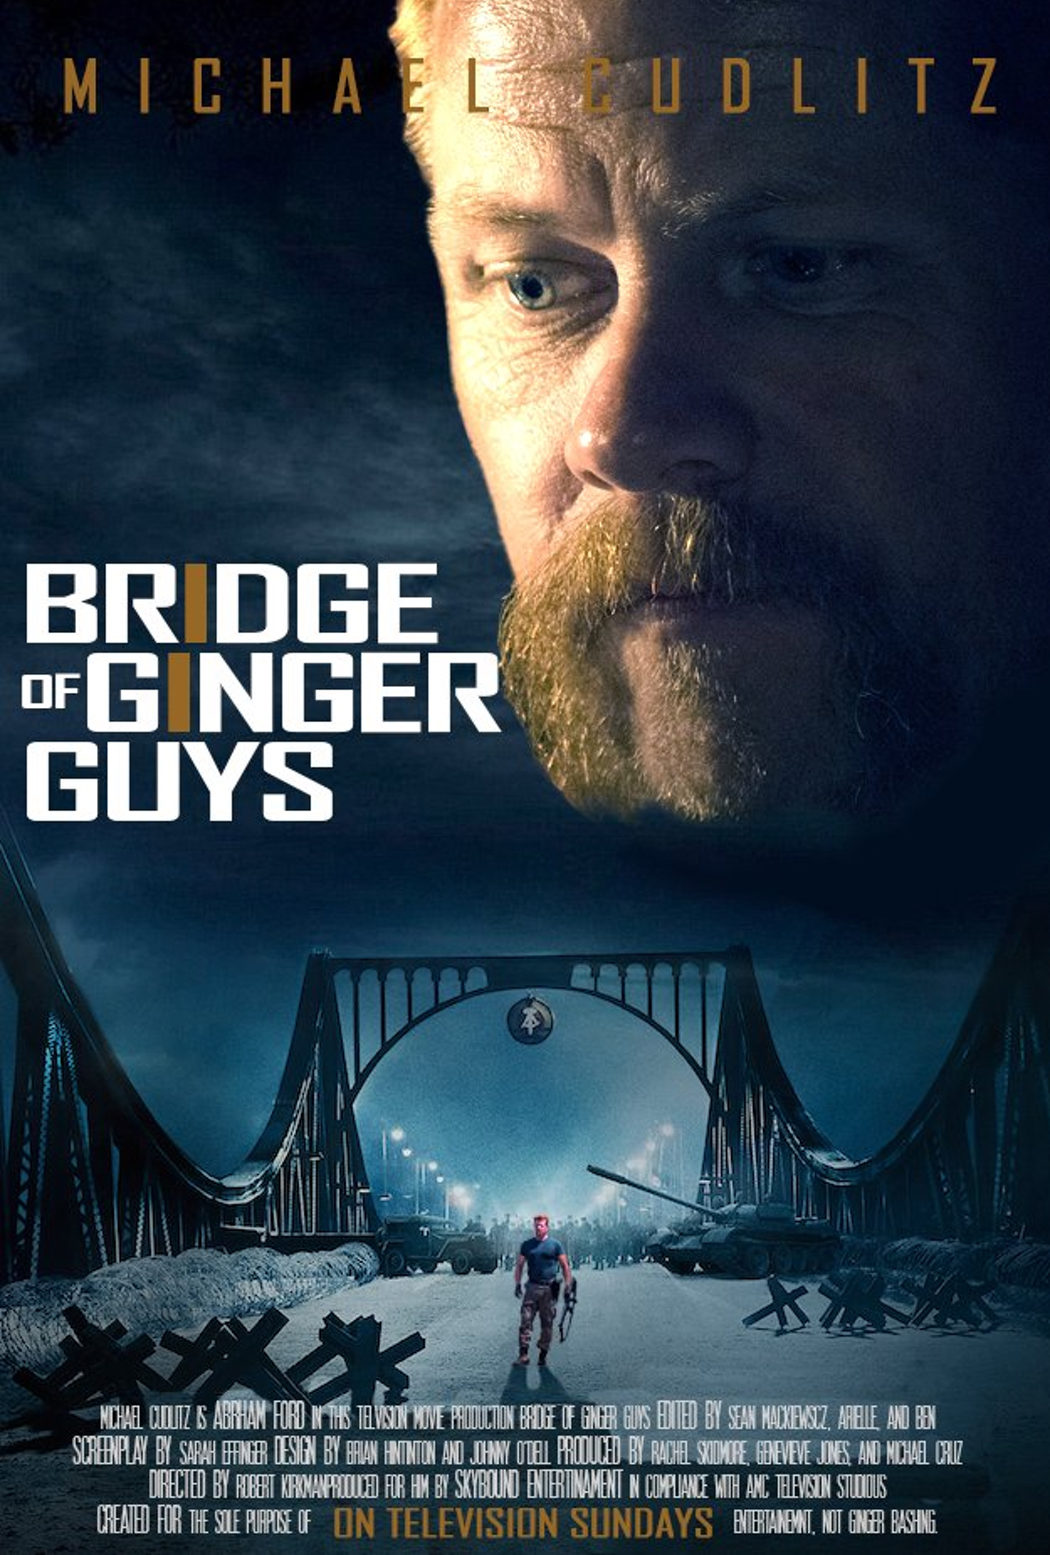 'Bridge of Ginger Guys'